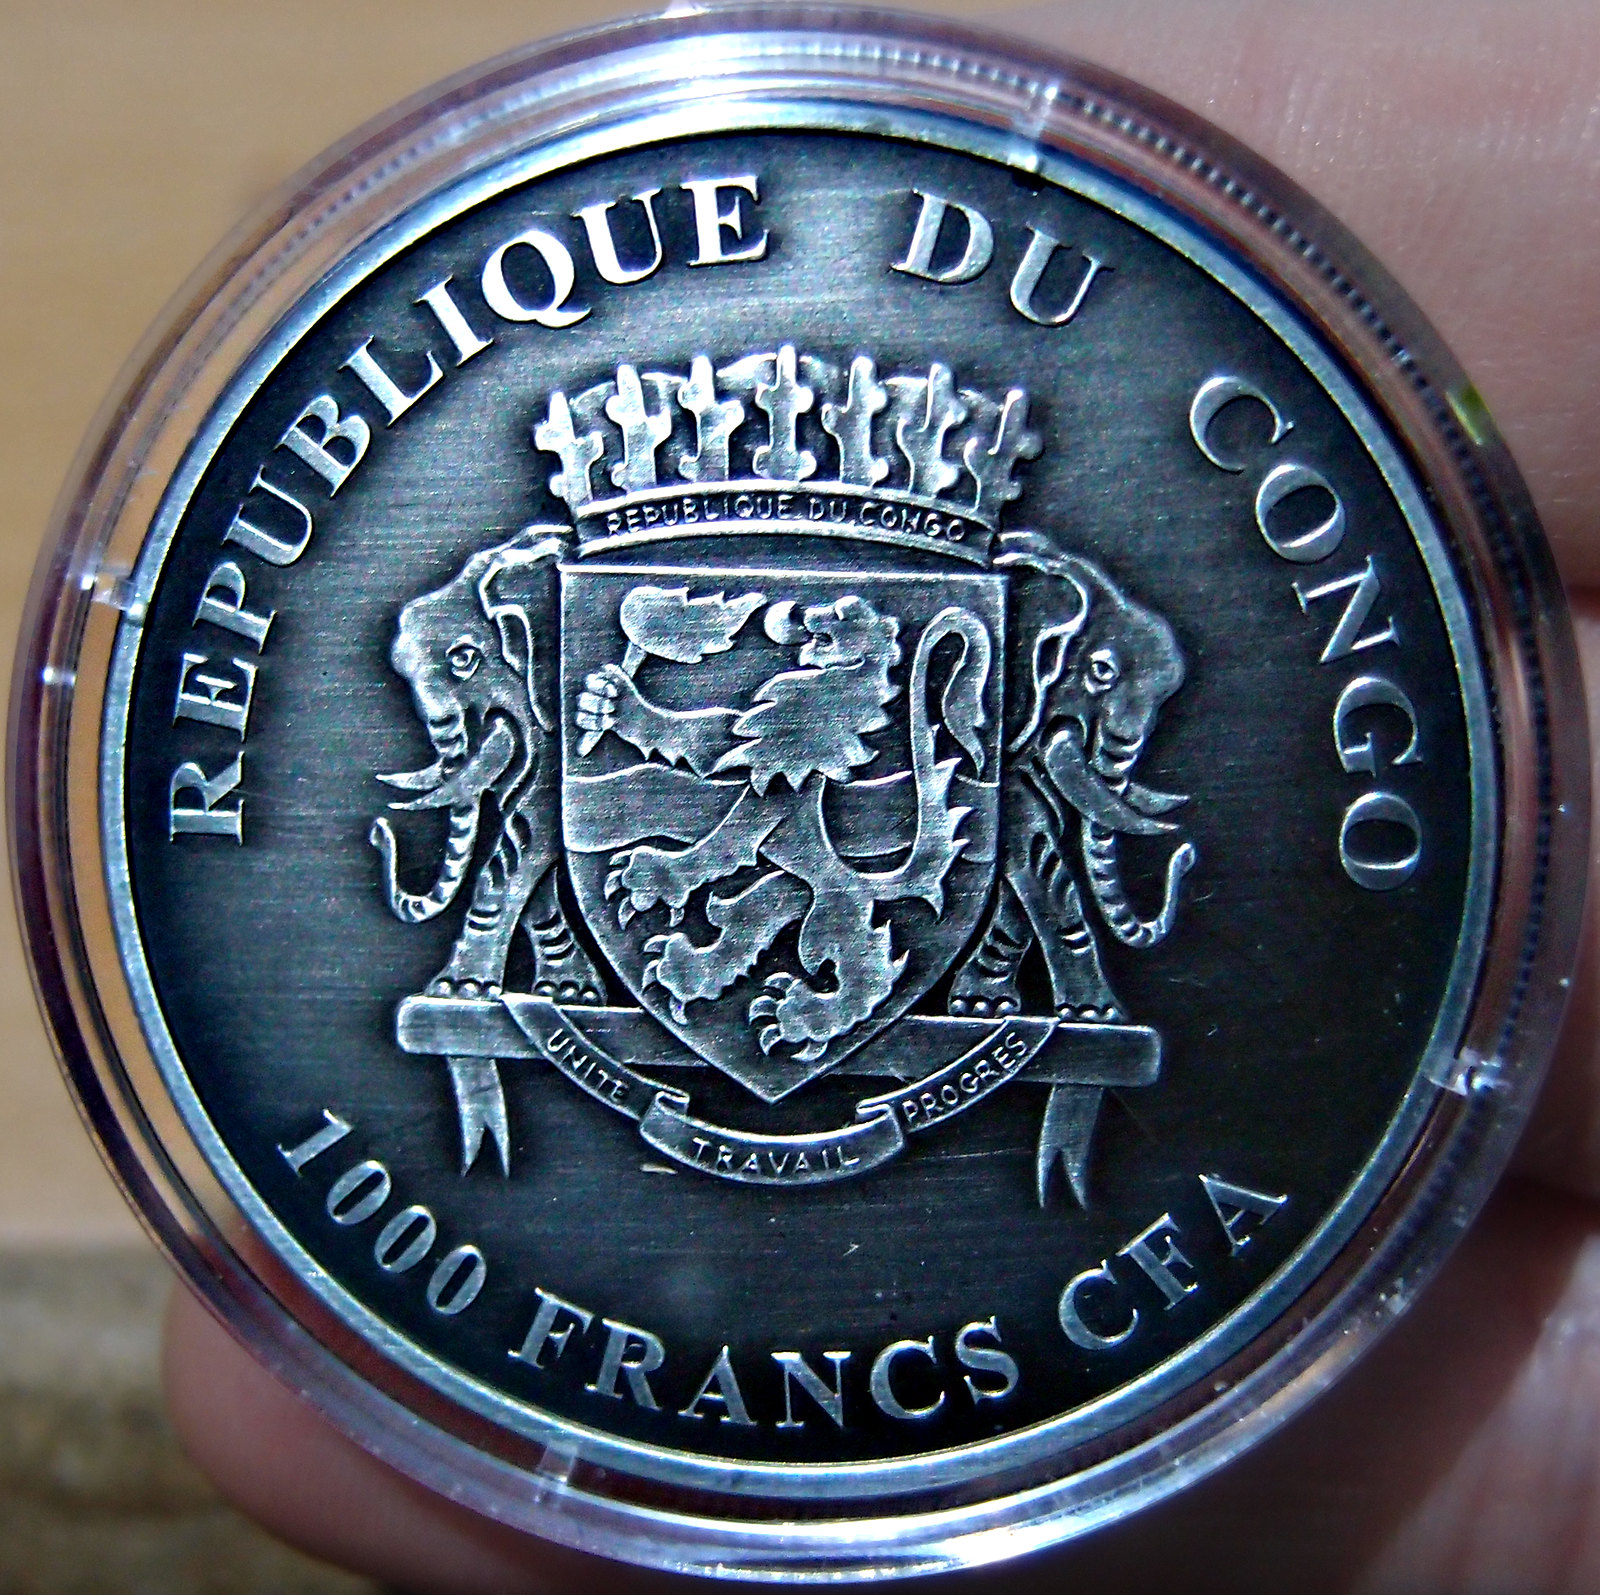 African Silver Ounce Serie  10025231254_fcbbff96fc_h